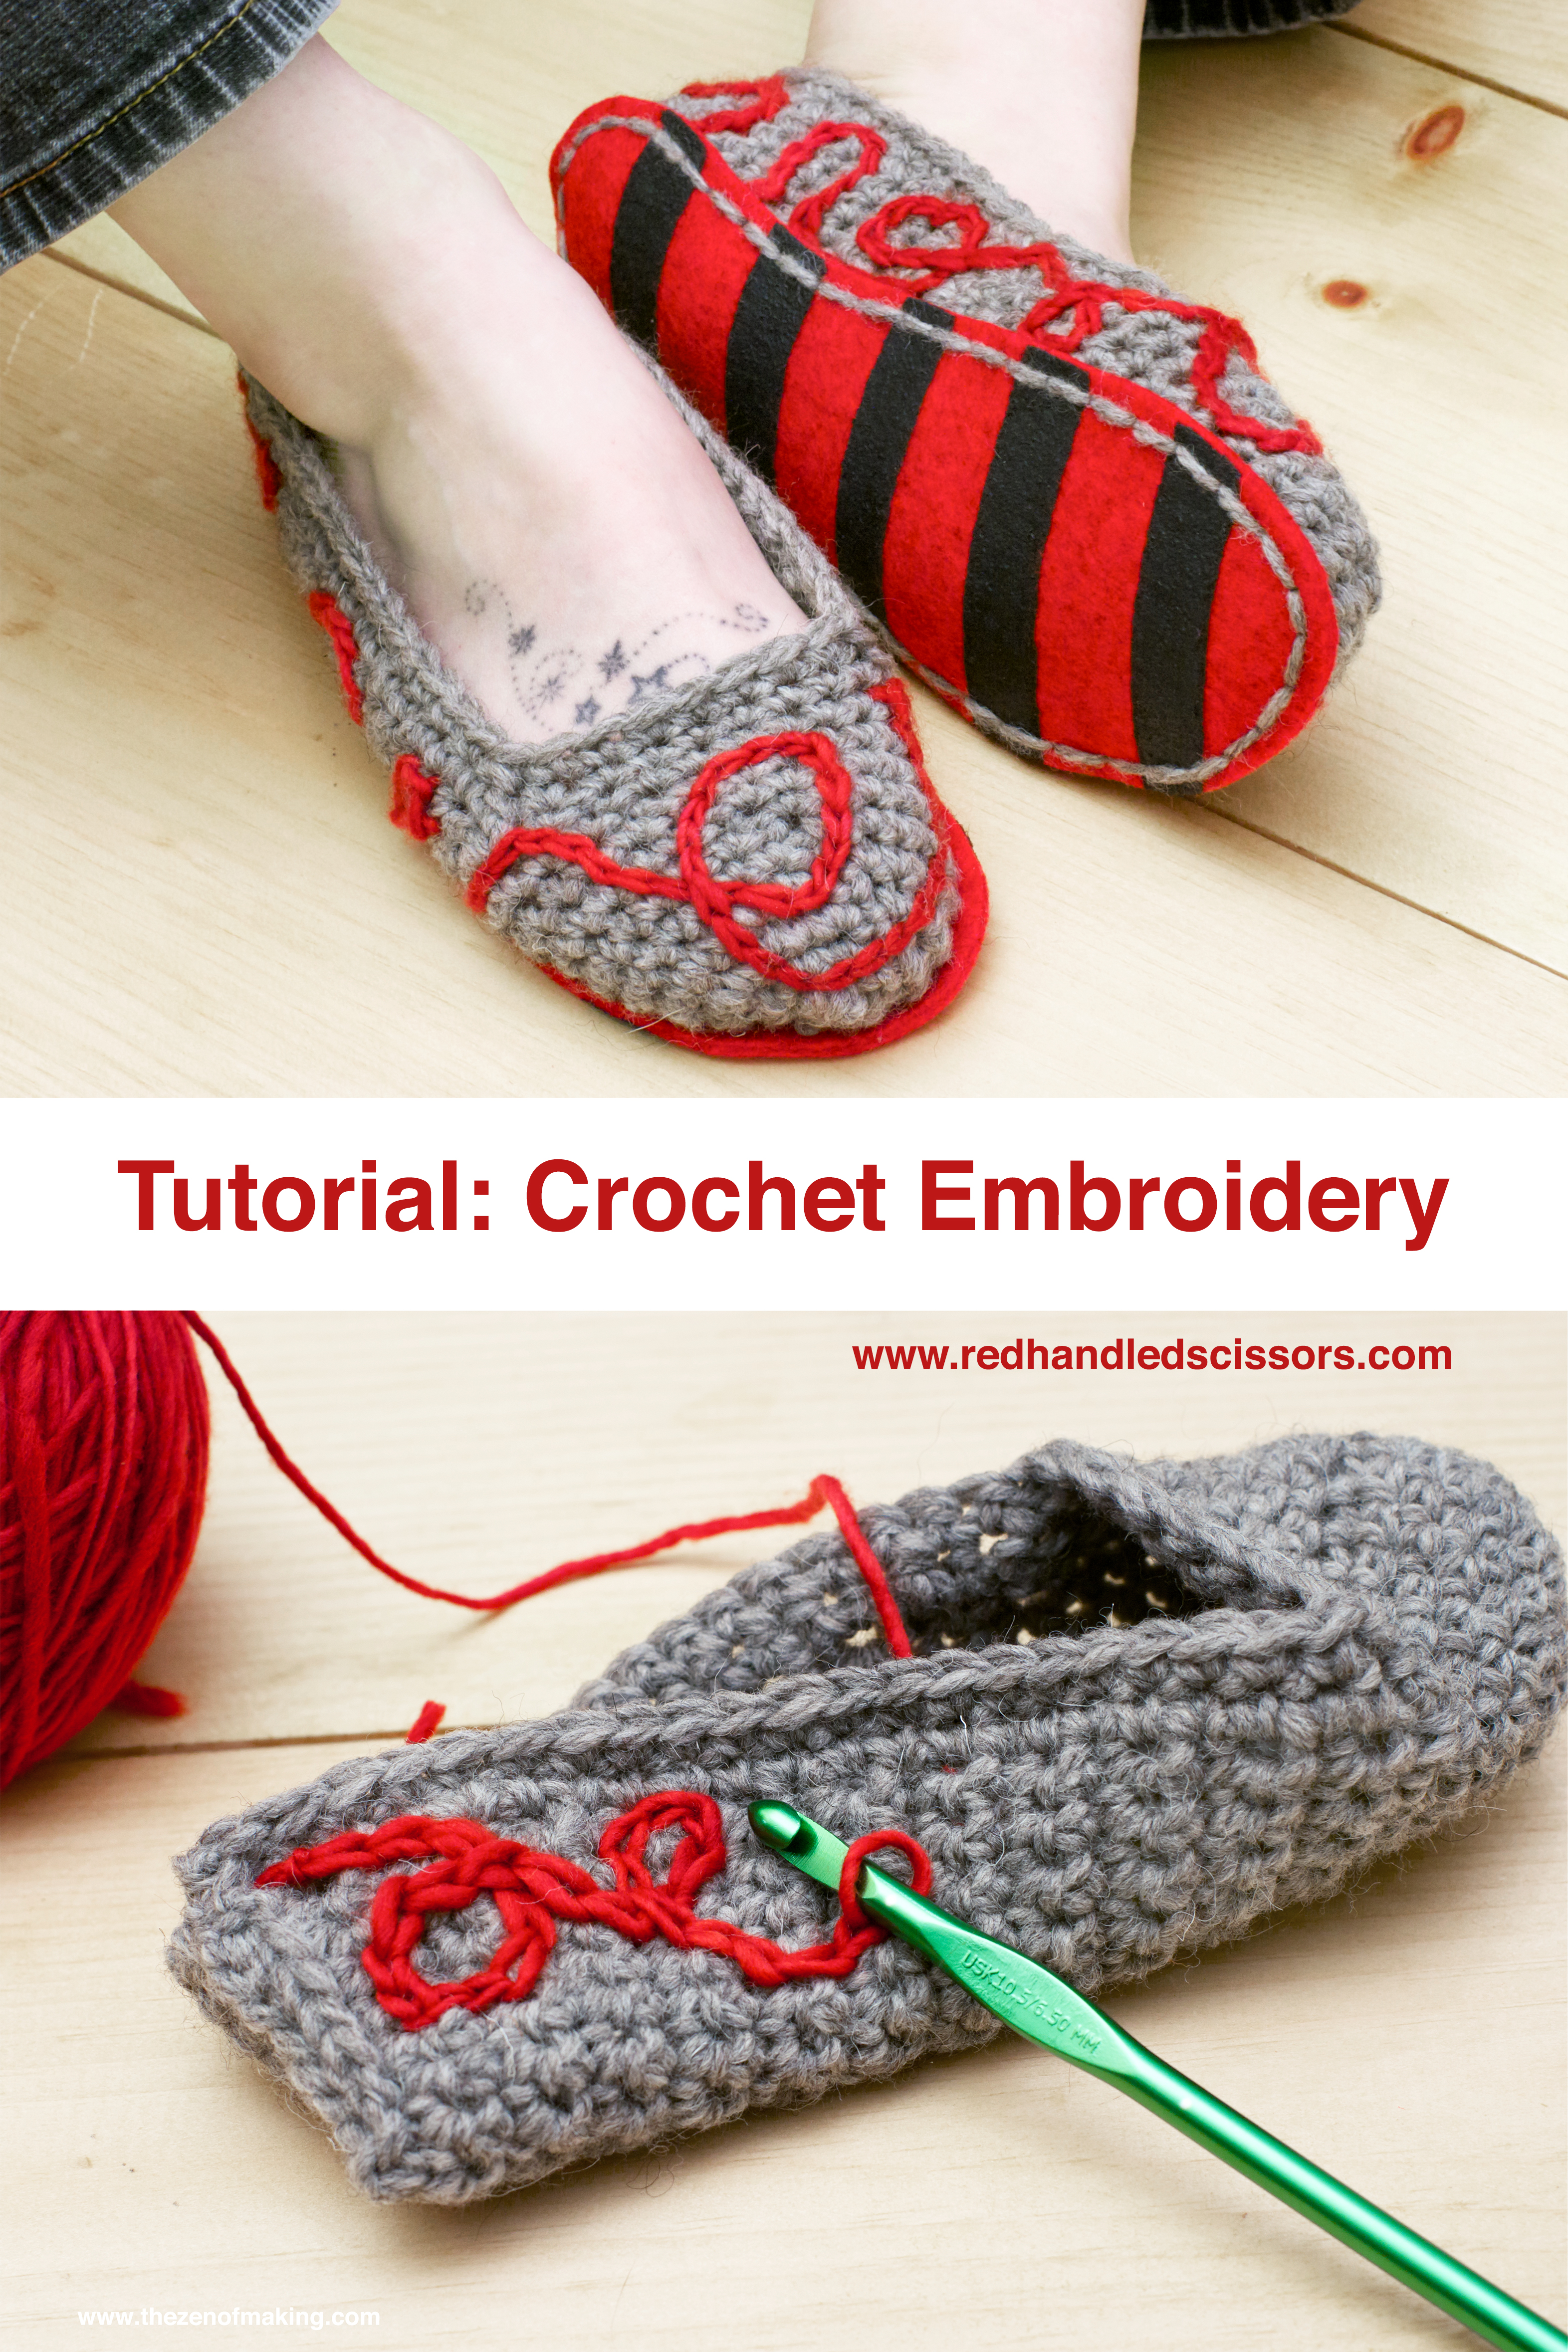 Tutorial: Crochet Embroidery